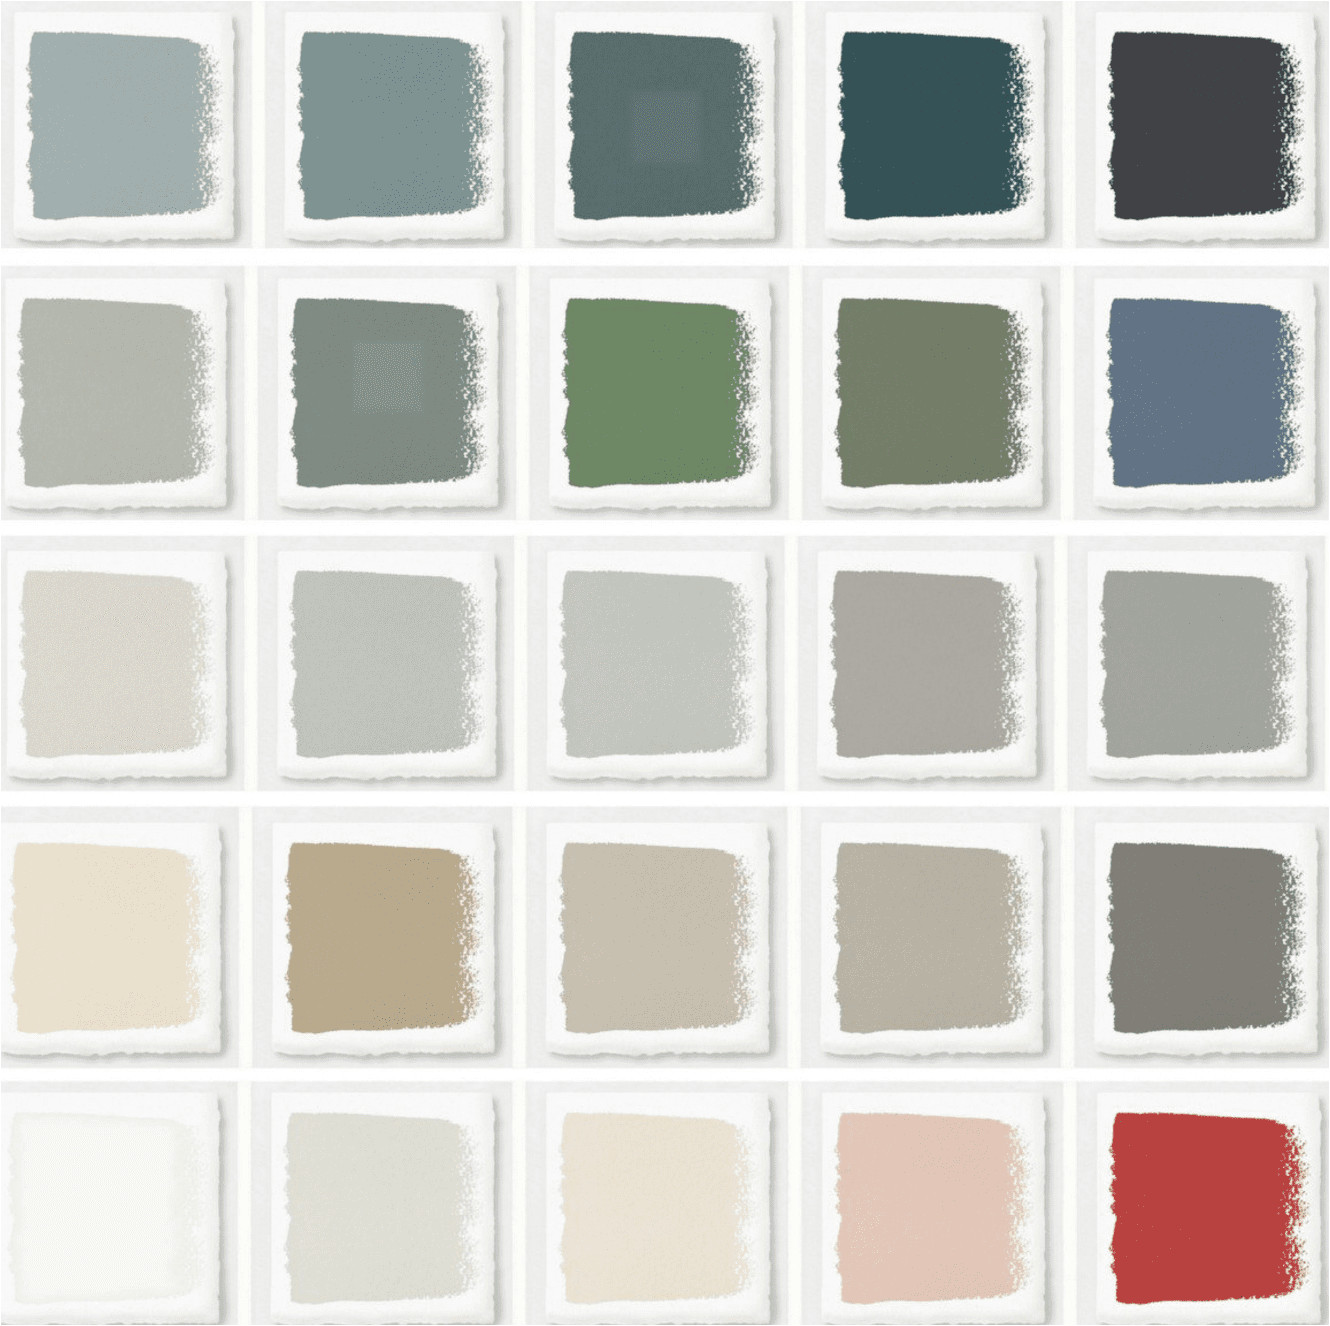 Hgtv Fixer Upper Paint Colors Season 2 See Joanna Gaines Stunning Paint Colors